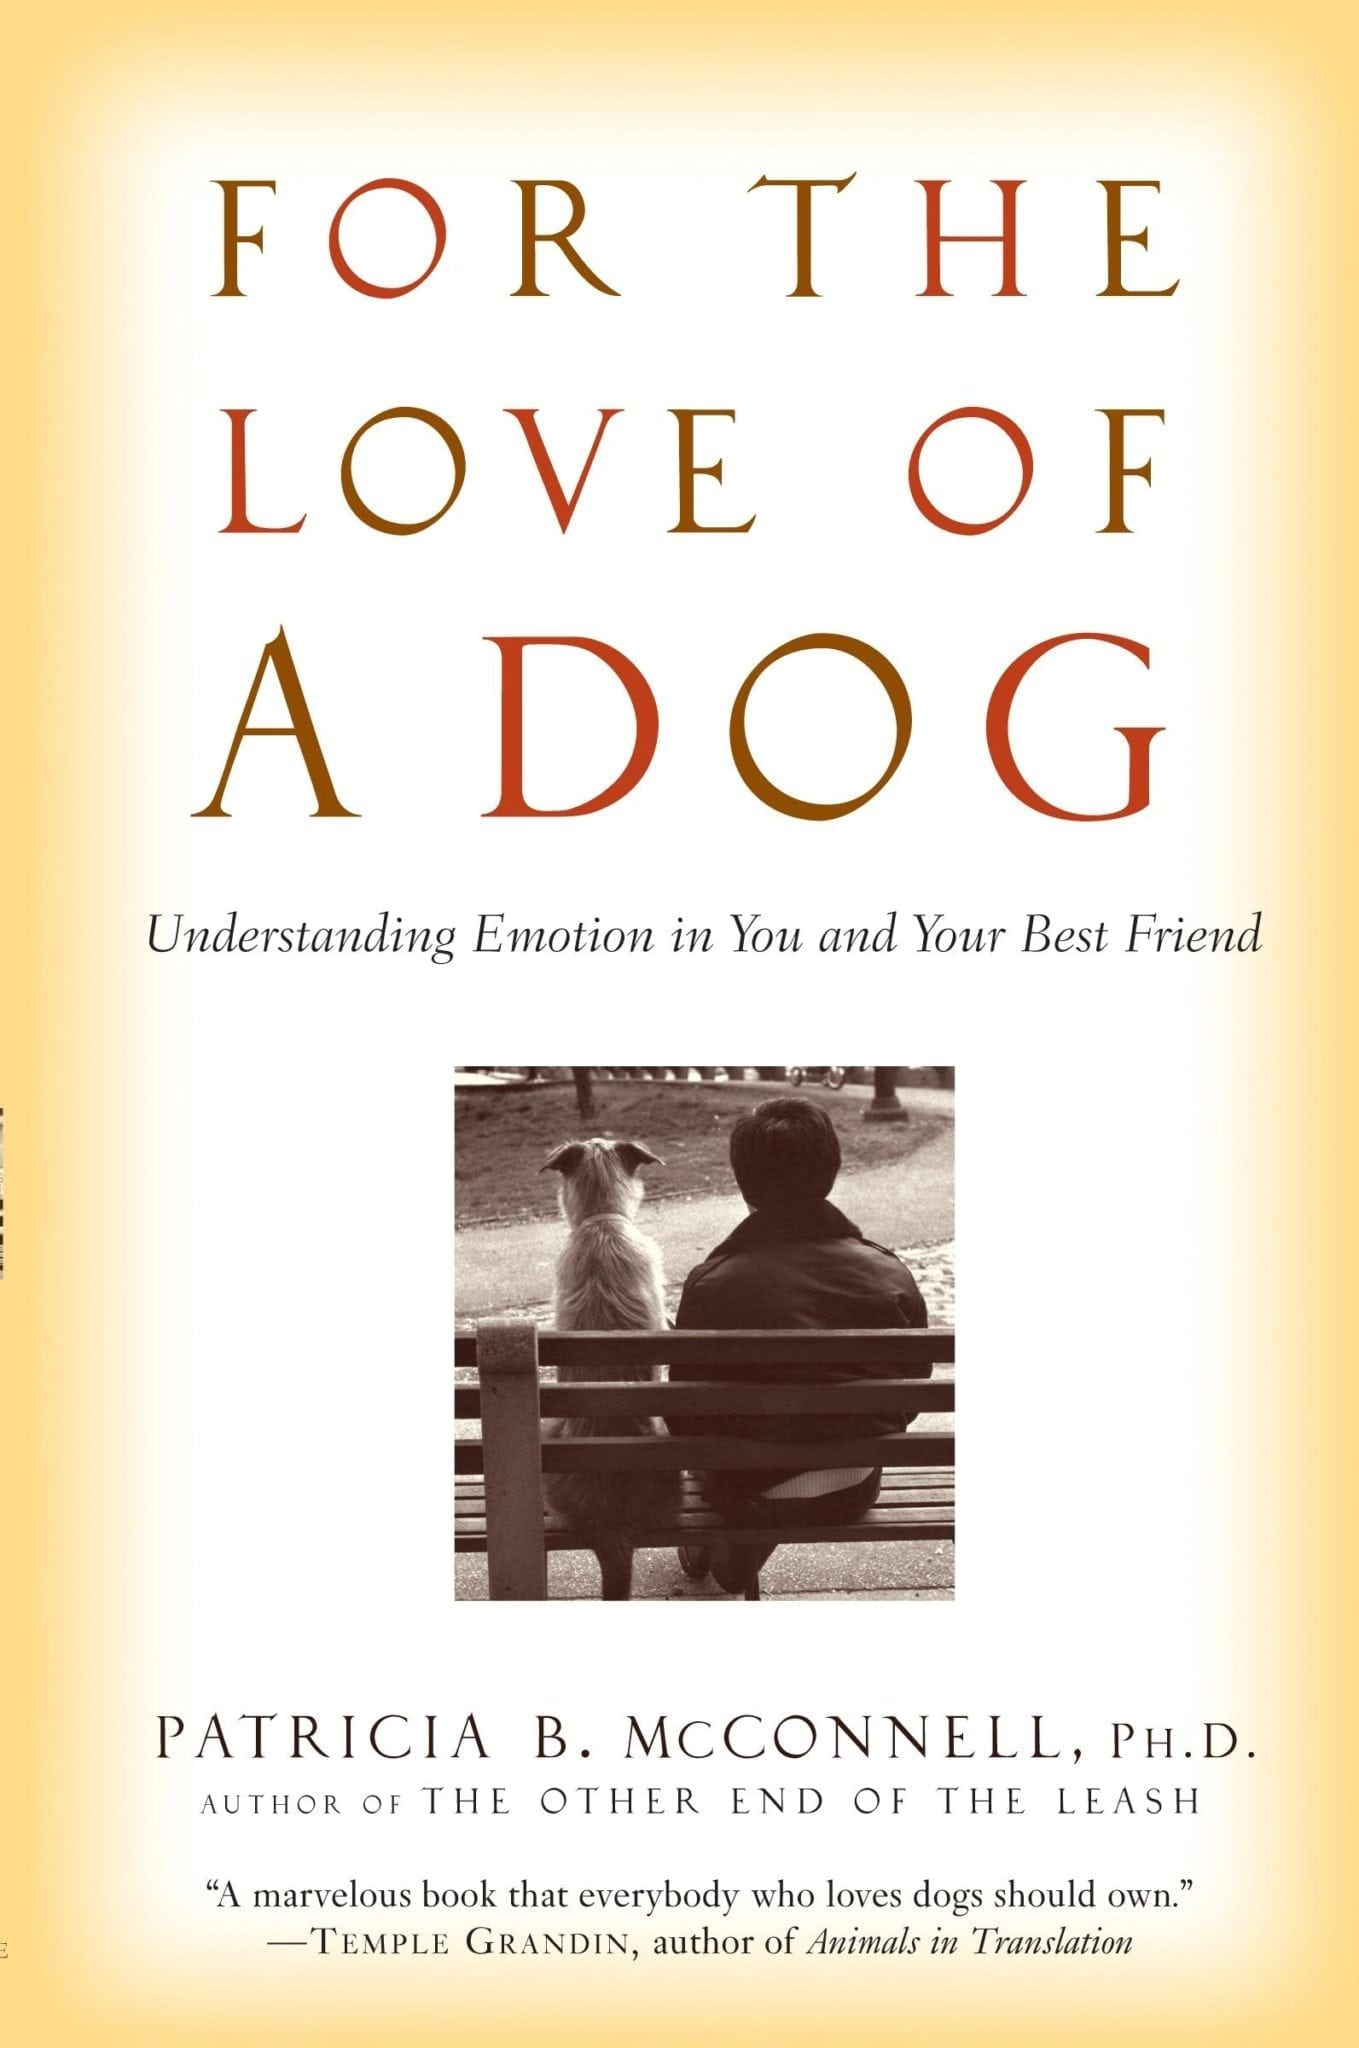 For the Love of a Dog: Understanding Emotion in You and Your Best Friend by Patricia McConnell